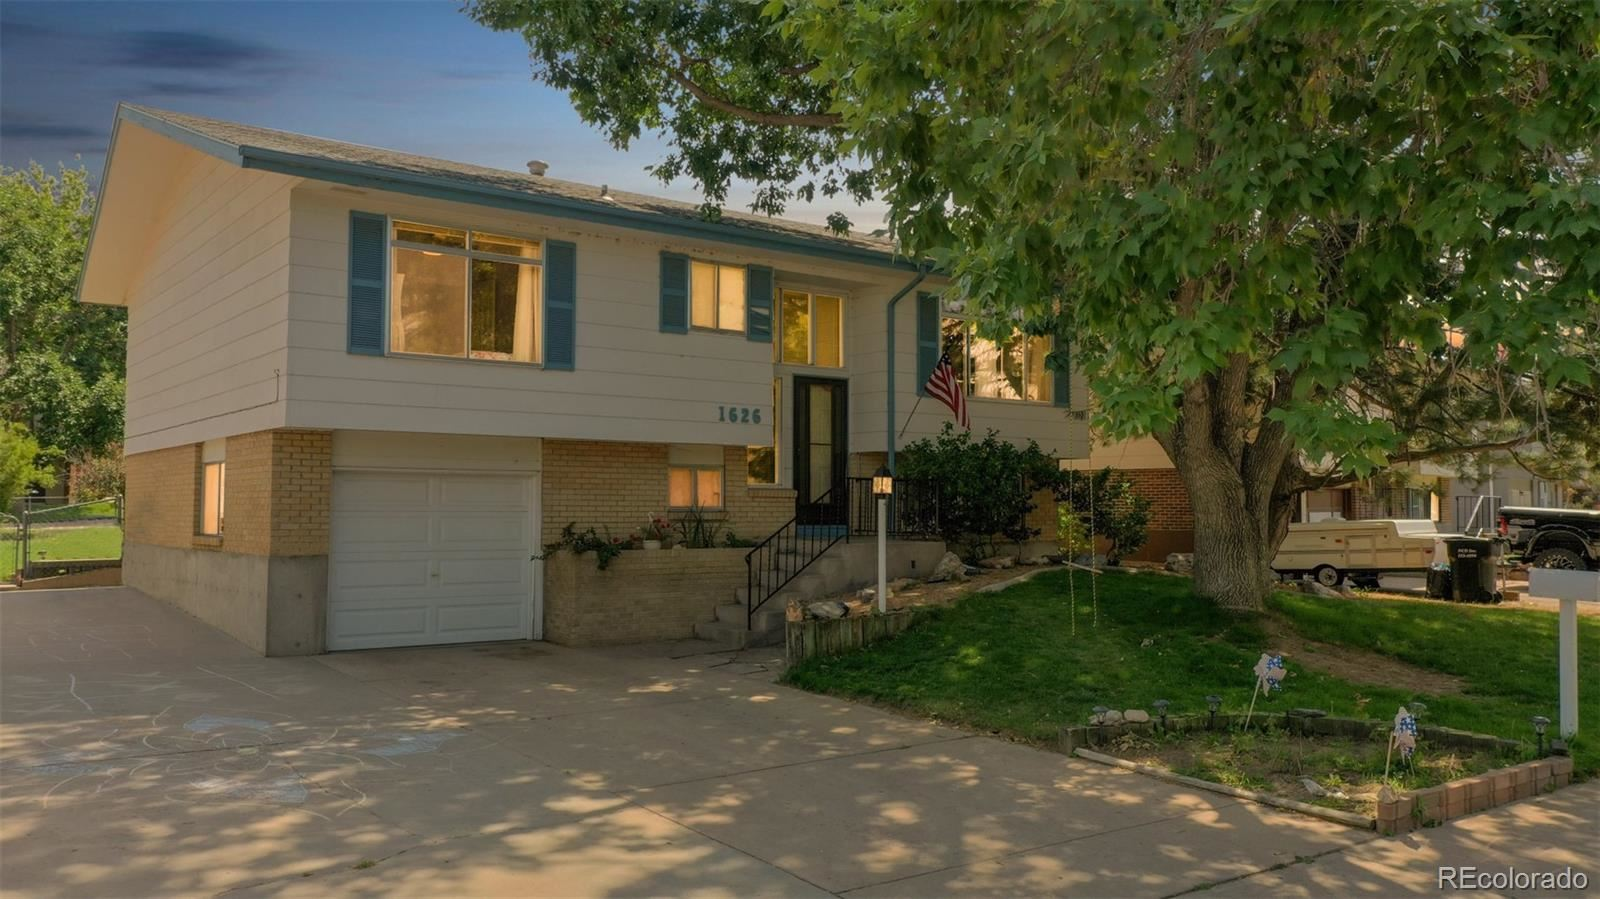 1626 26th Avenue Court, Greeley, CO 80634 - MLS#: 3080519